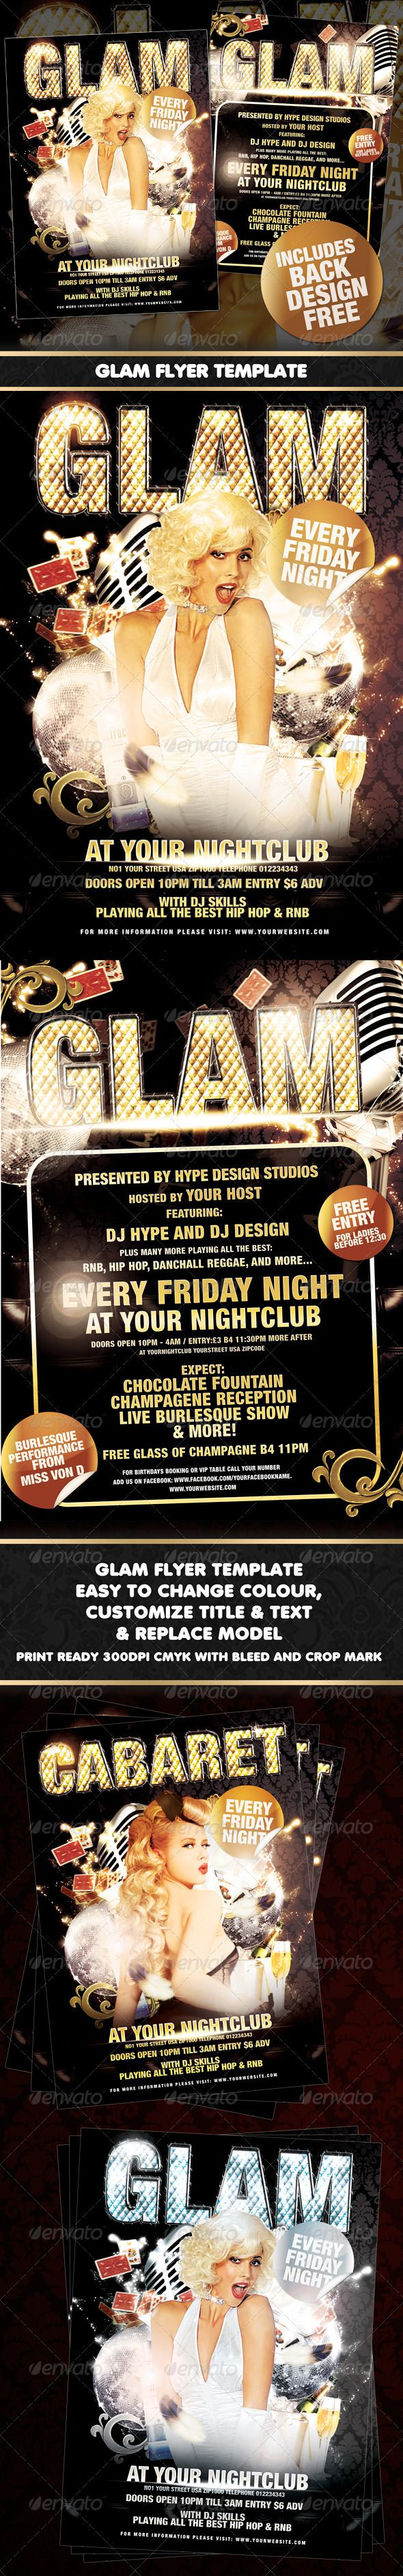 Glam Flyer Template  #GraphicRiver         Glam A3 flyer/poster for nightclubs/bars or events.  	 Perfect for a Burlesque/Cabaret night, stylish club night or a weekly or one off event!  	 Easy to edit layers, text & the title.  	 Easy to replace model  	 - Print ready 300DPI CMYK with bleed and crop mark - A3 (297 × 420 with 3mm bleed) - Main logo is easily changeable. - All text easily changeable - Multiple color options - Miltiple background options - text help file included  	 Models…